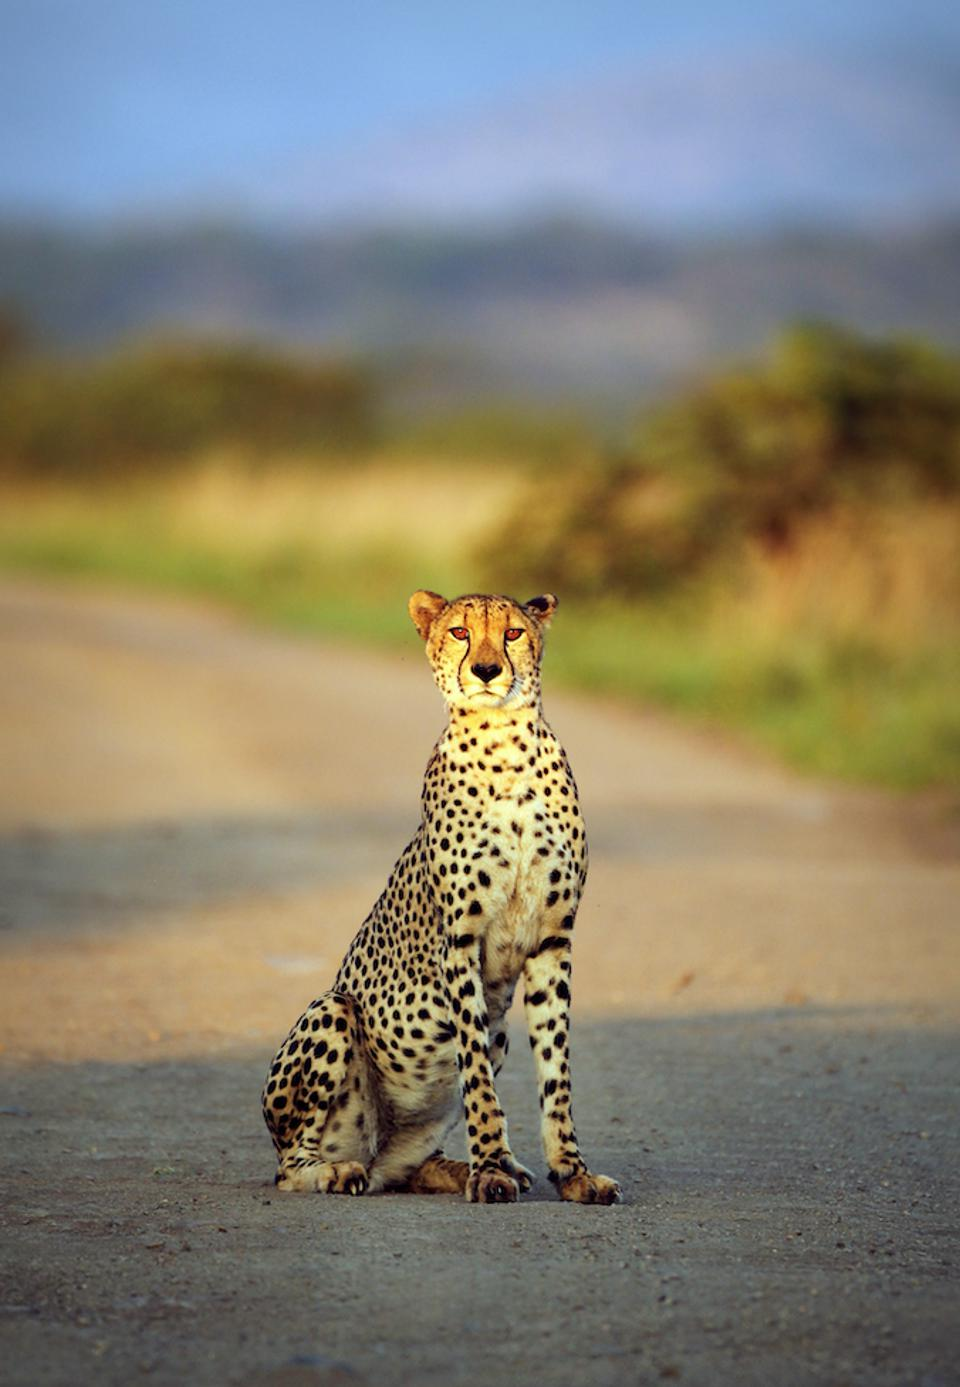 A Cheetah sitting on a gravel road.